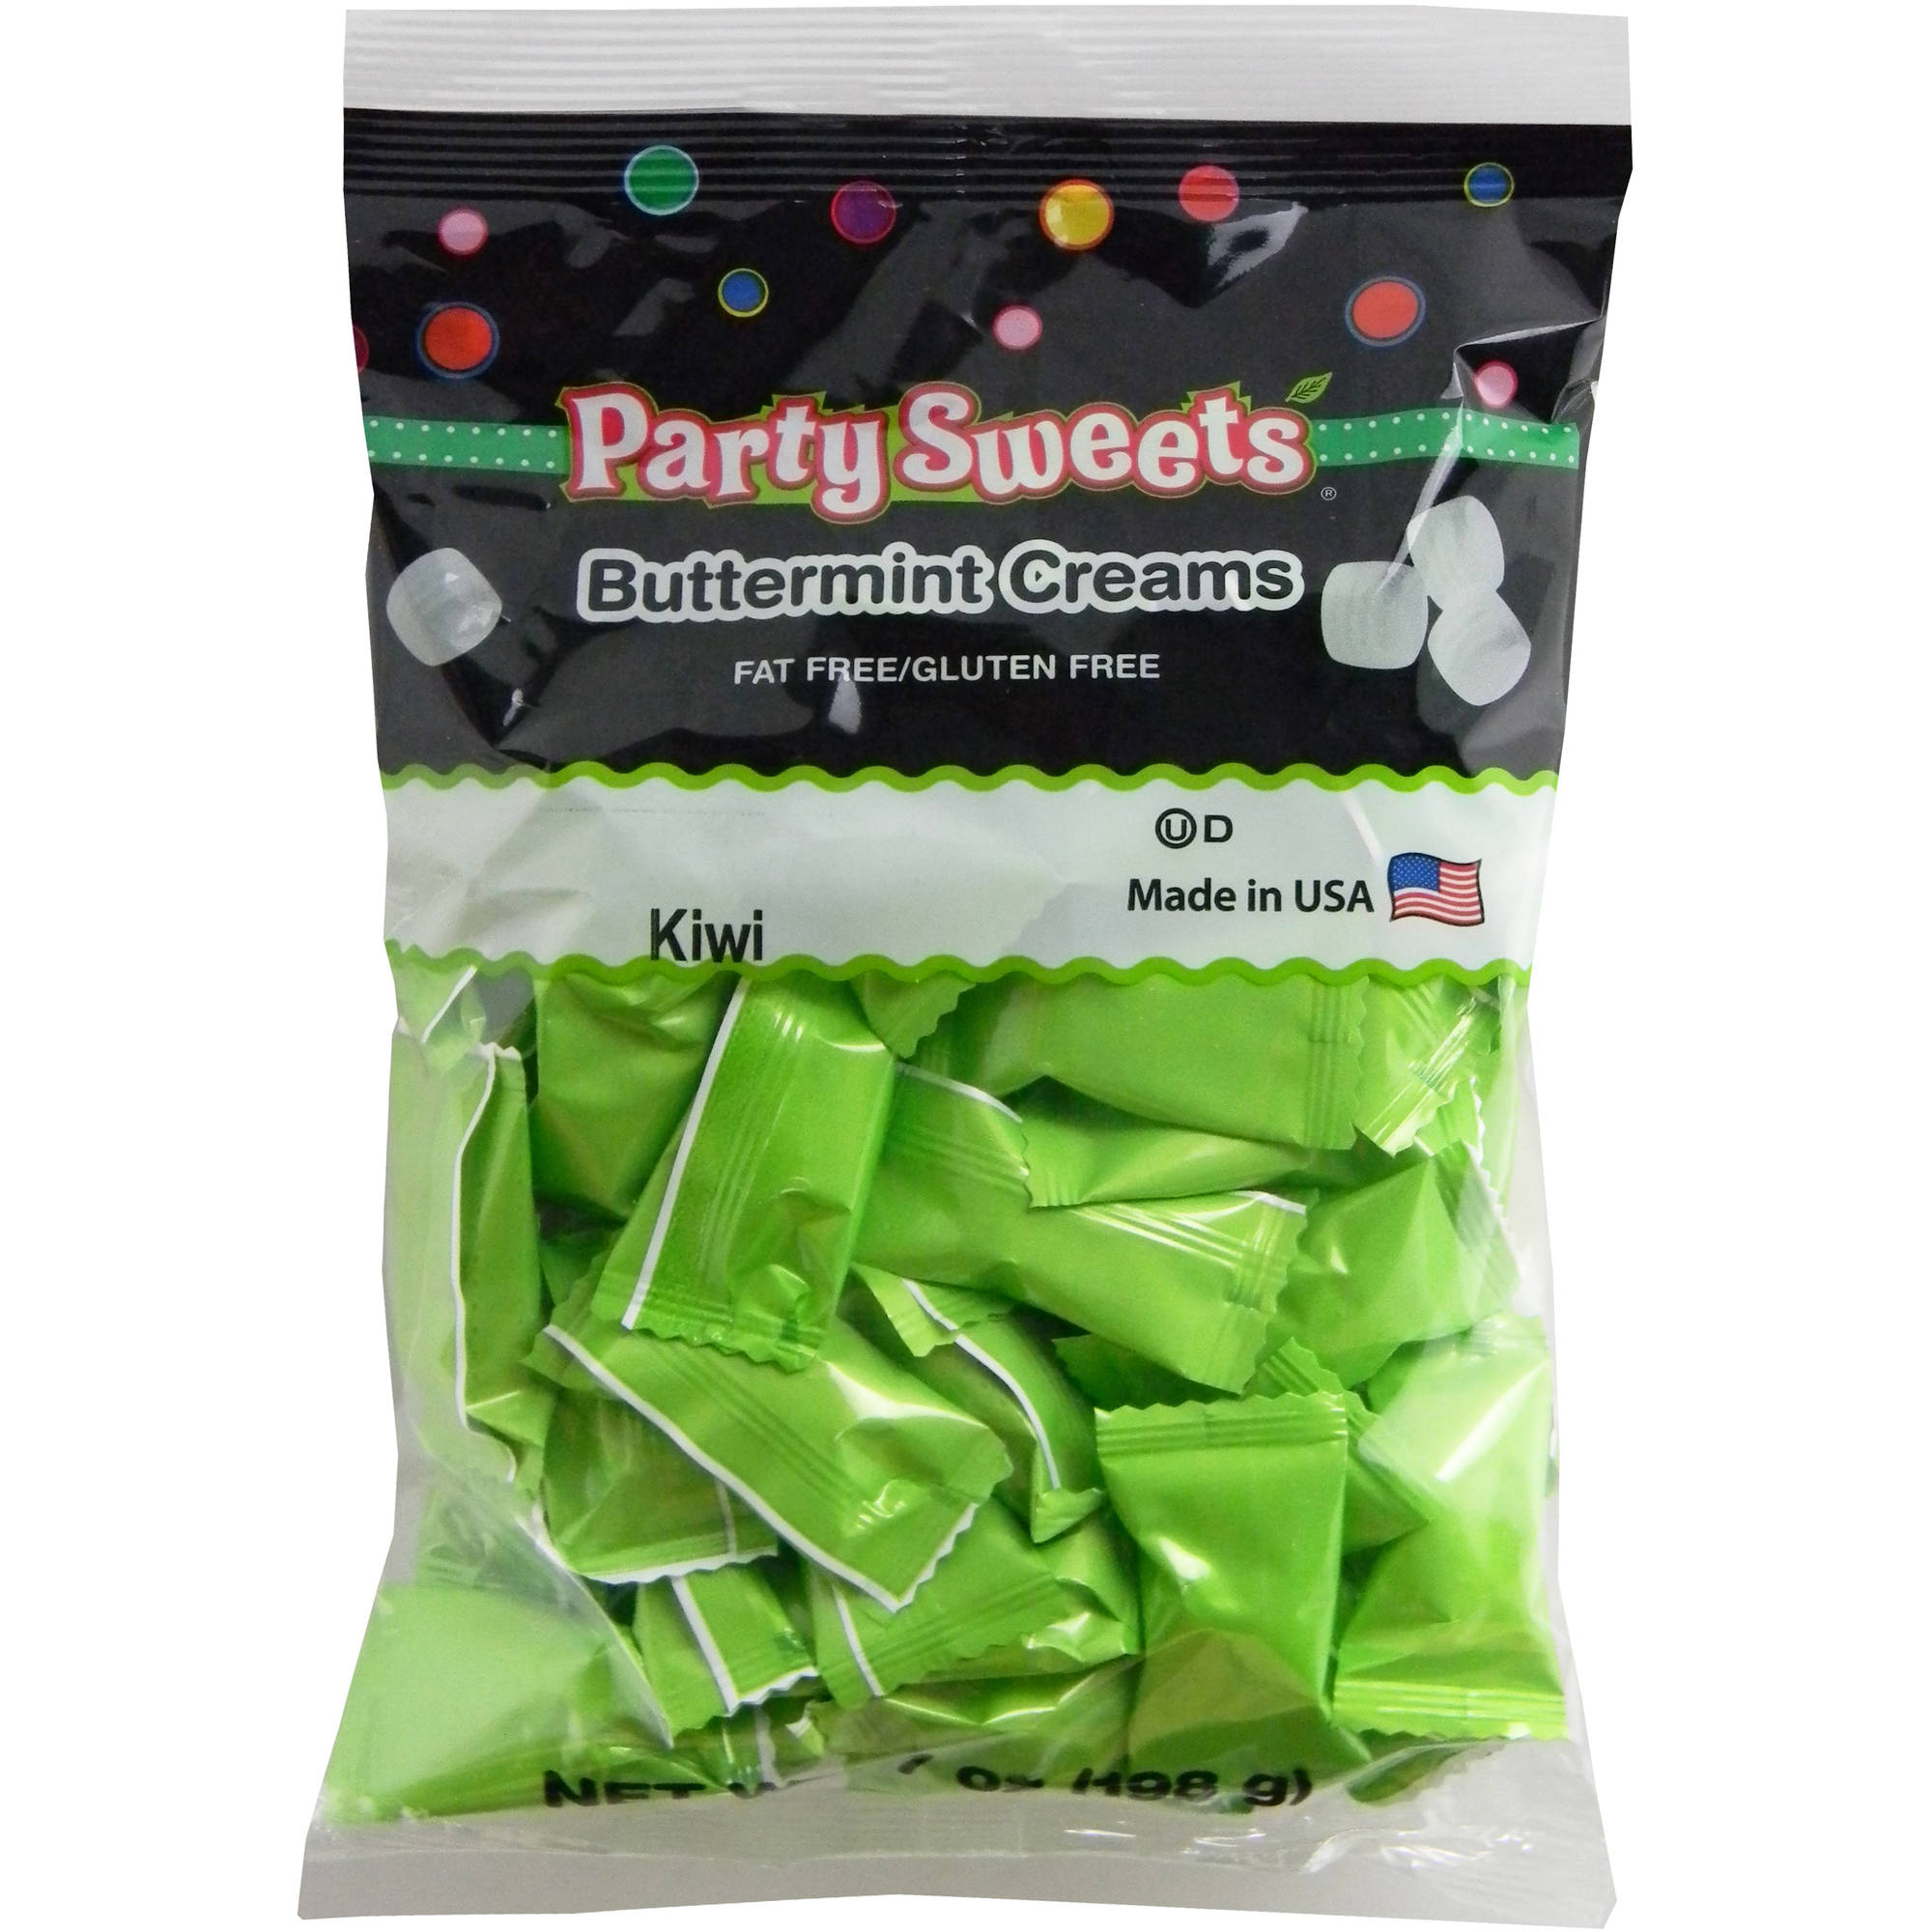 Party Sweets Kiwi Buttermint Creams Candy, 7 oz